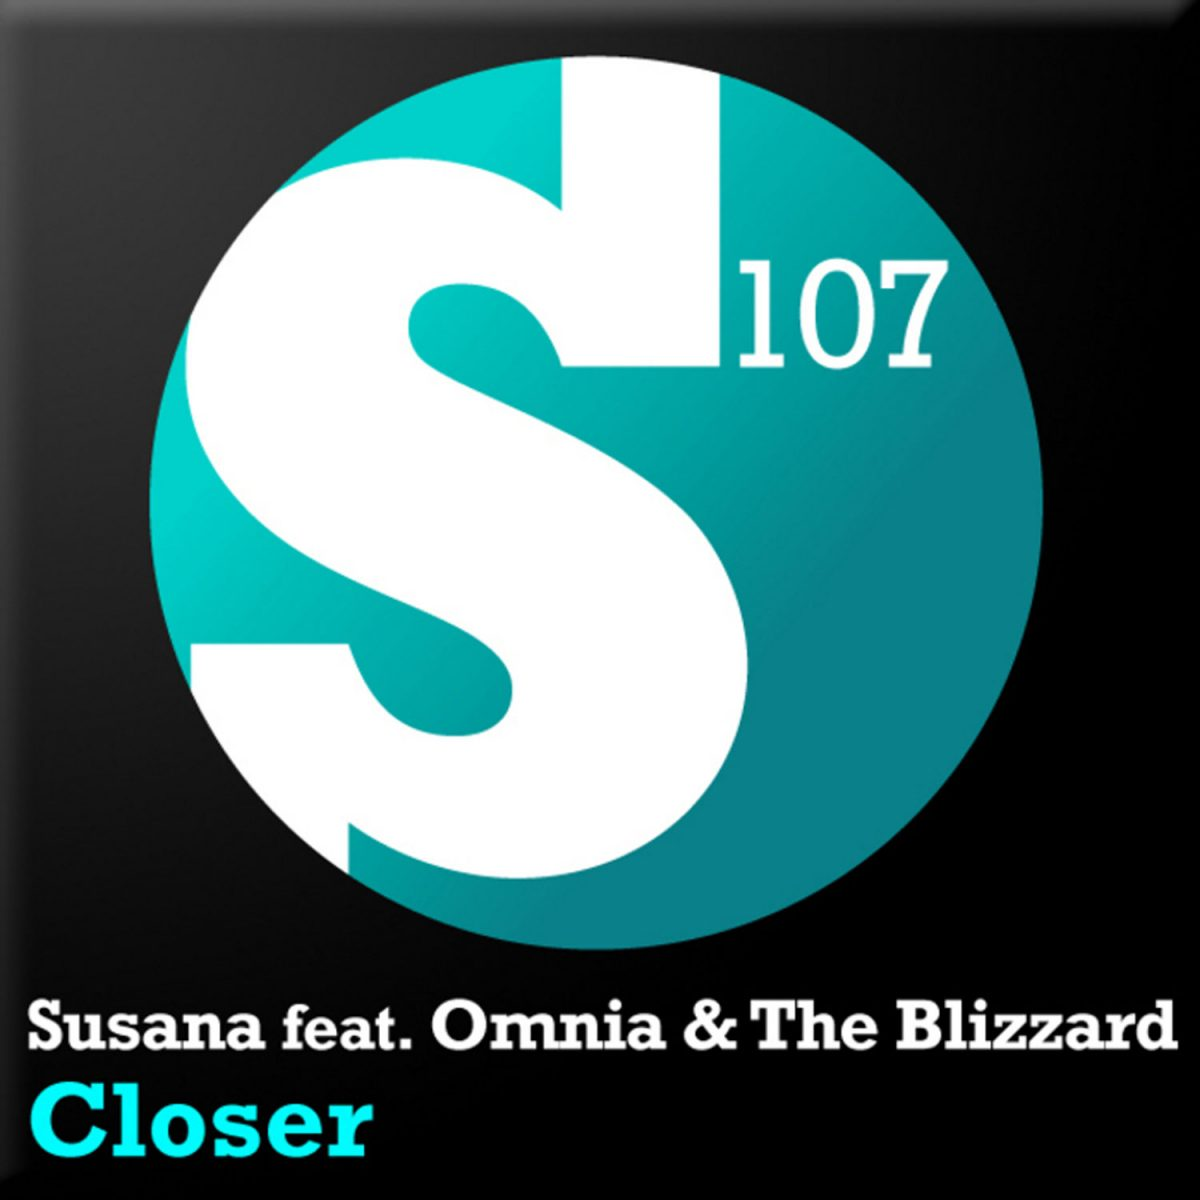 Susana feat. Omnia & The Blizzard - Closer on Armada Music